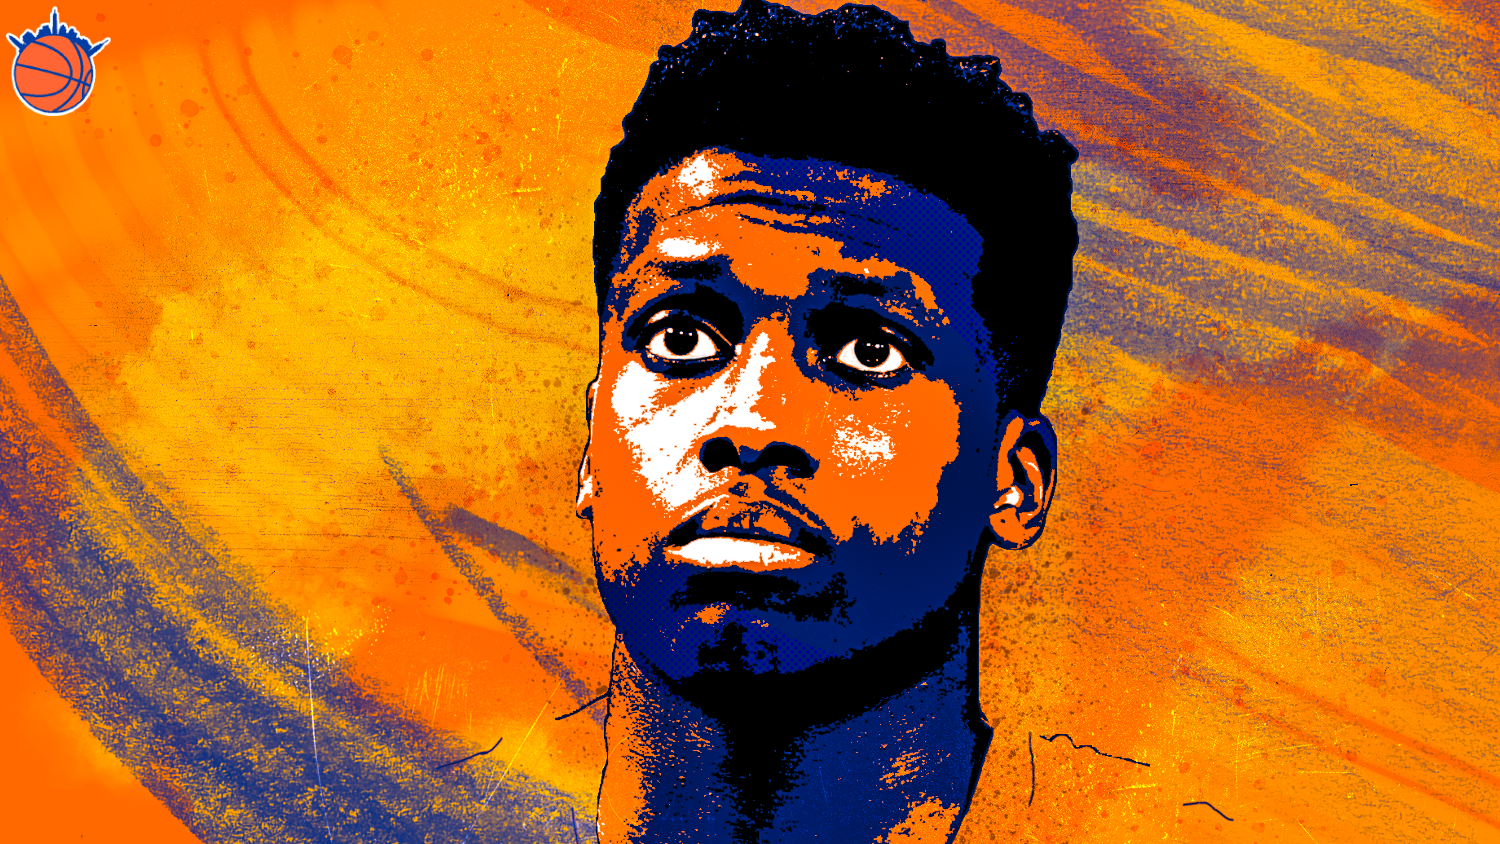 The Frank Ntilikina Conundrum: How Do the Knicks Wrestle With the Second-Year Guard's Development Amid Obvious Struggles?